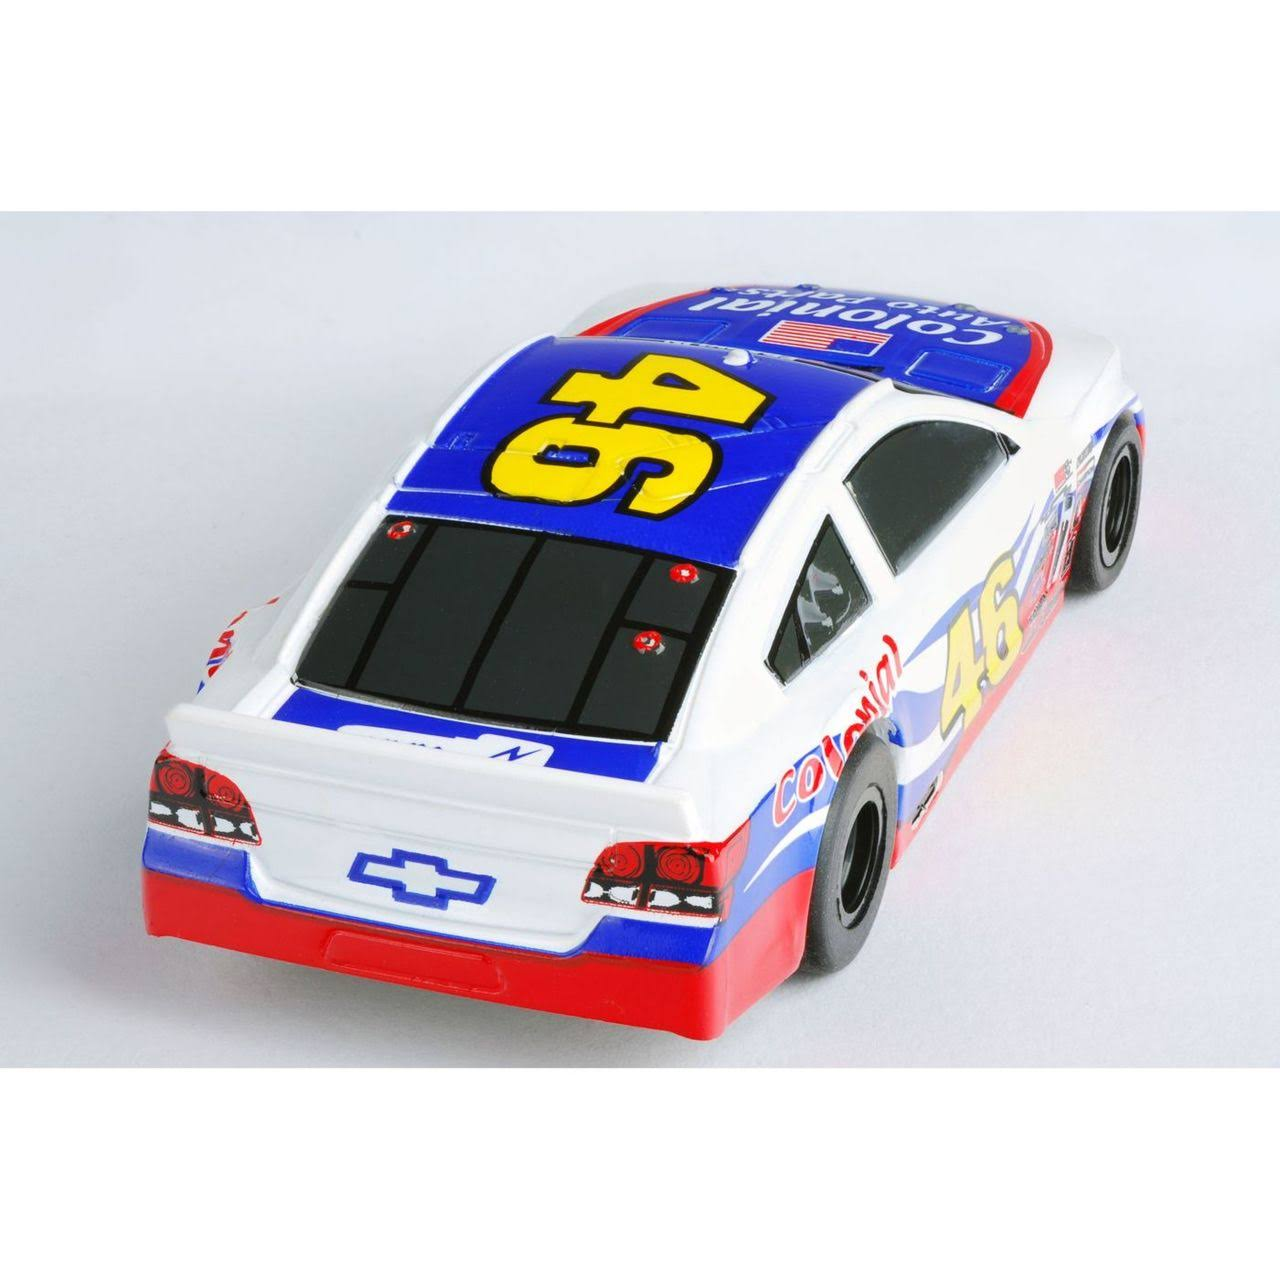 Afx Stocker Number 46 Chevy Slot Car